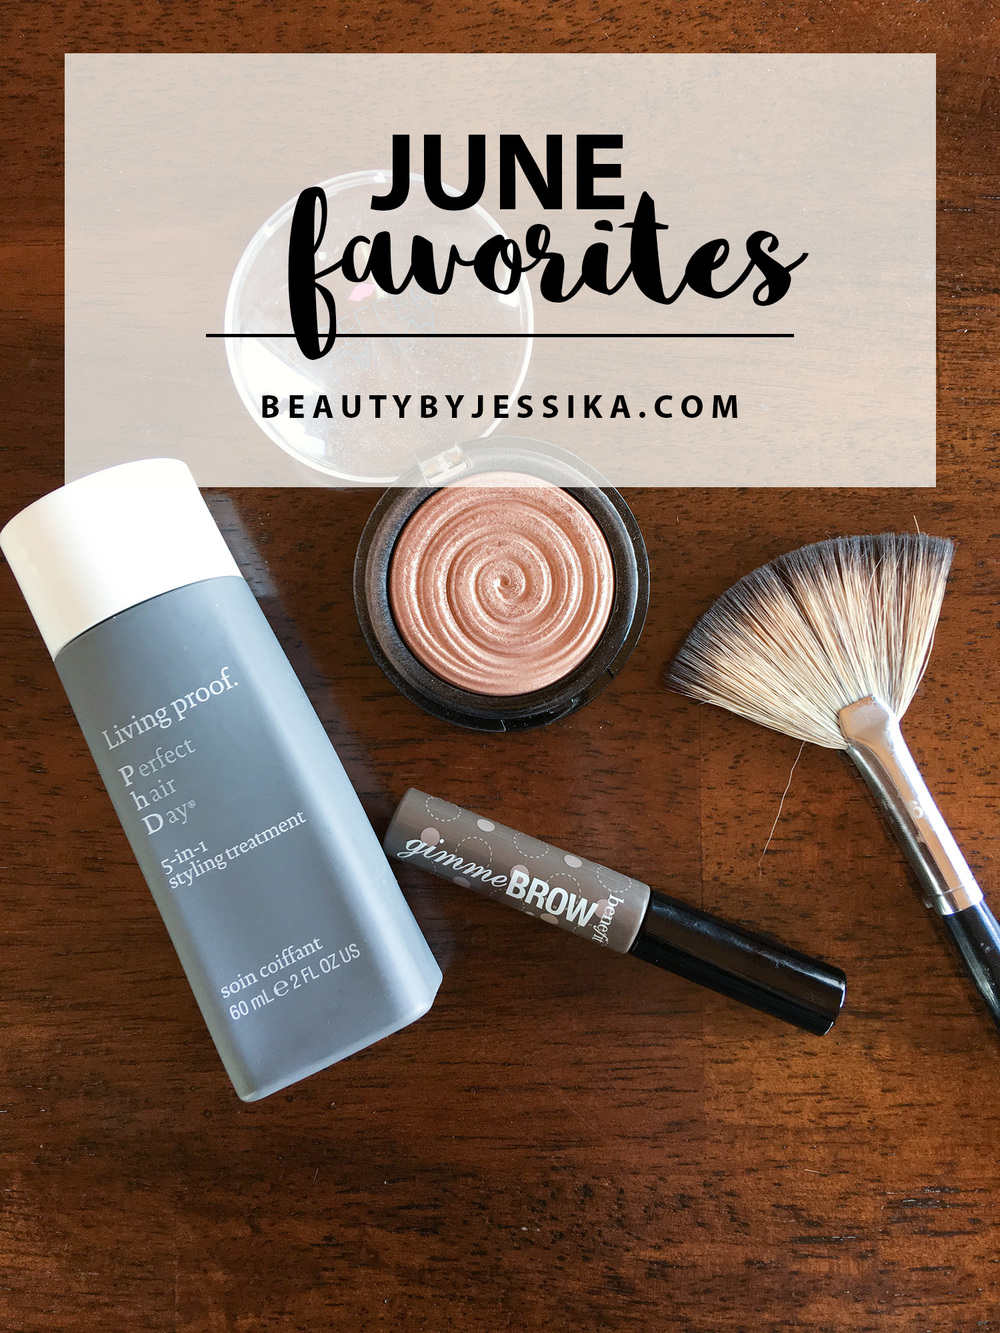 My June Favorites featuring my favorite blogger, hair & makeup products and YouTuber! Read it now on beautybyjessika.com.